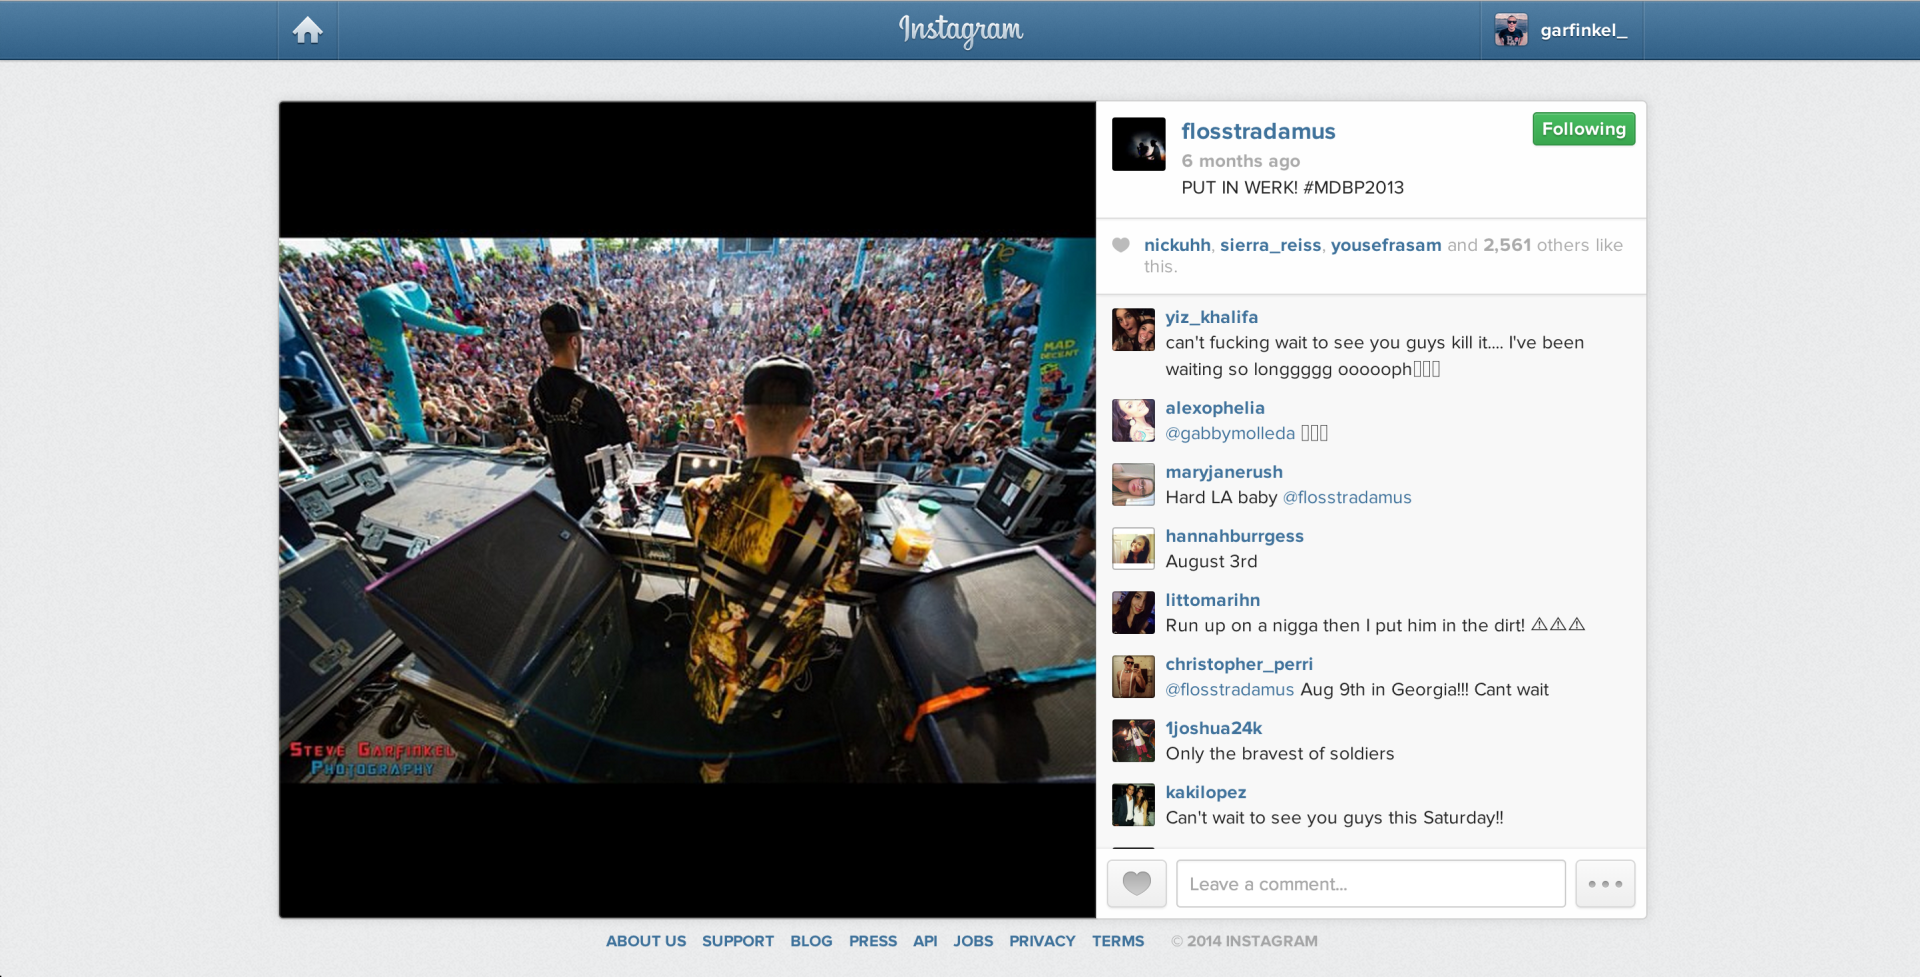 Flosstradamus sharing photos taken for them.